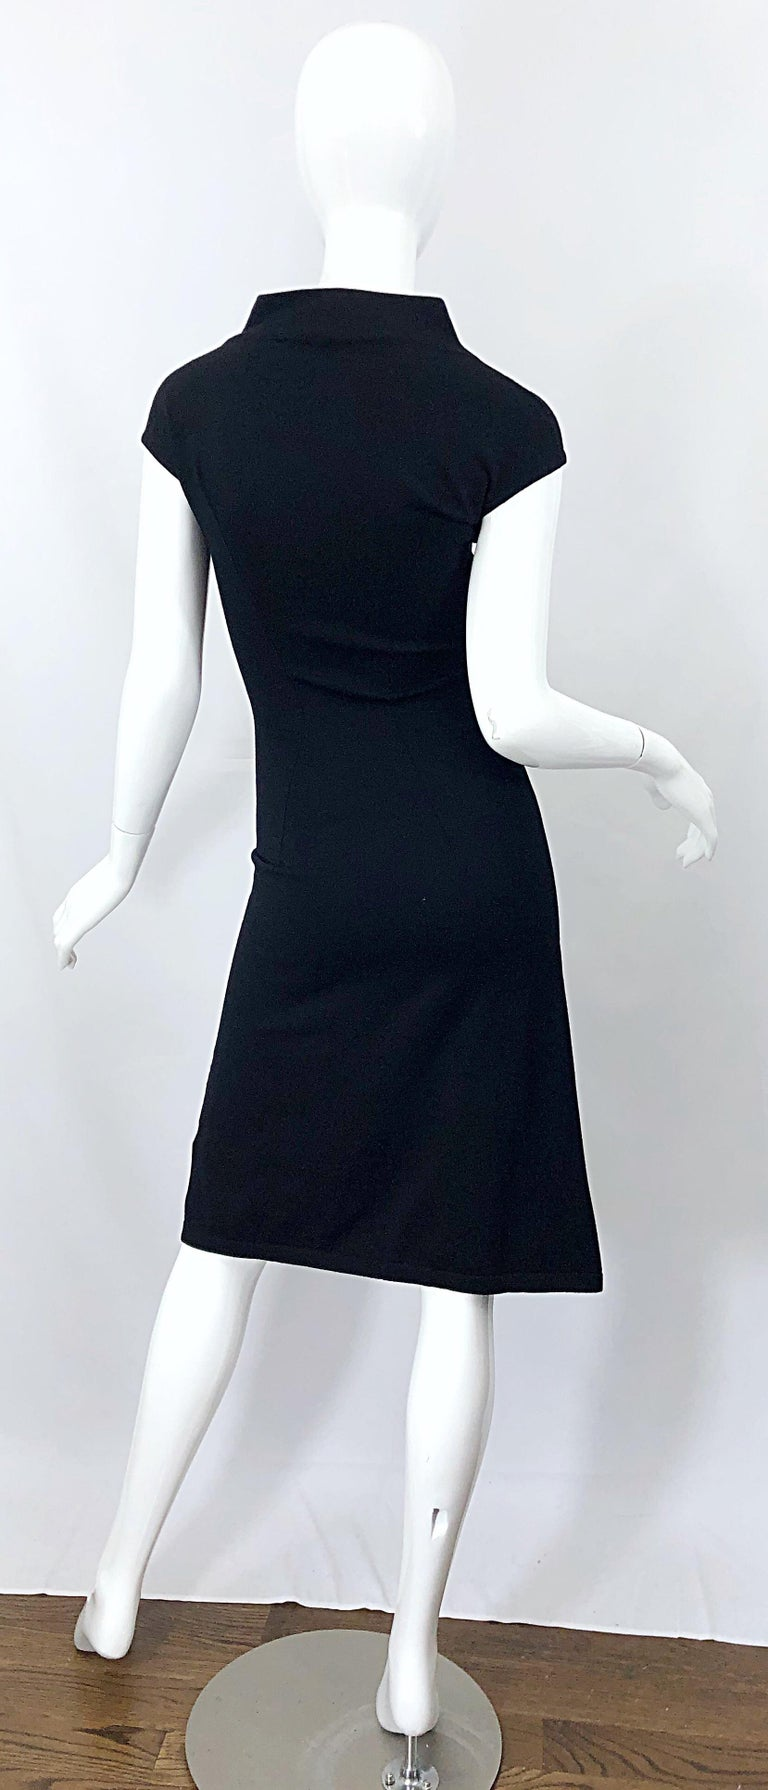 Vintage Azzedine Alaia 1980s Black Lightweight Wool Cap Sleeve Bodycon 80s Dress For Sale 1